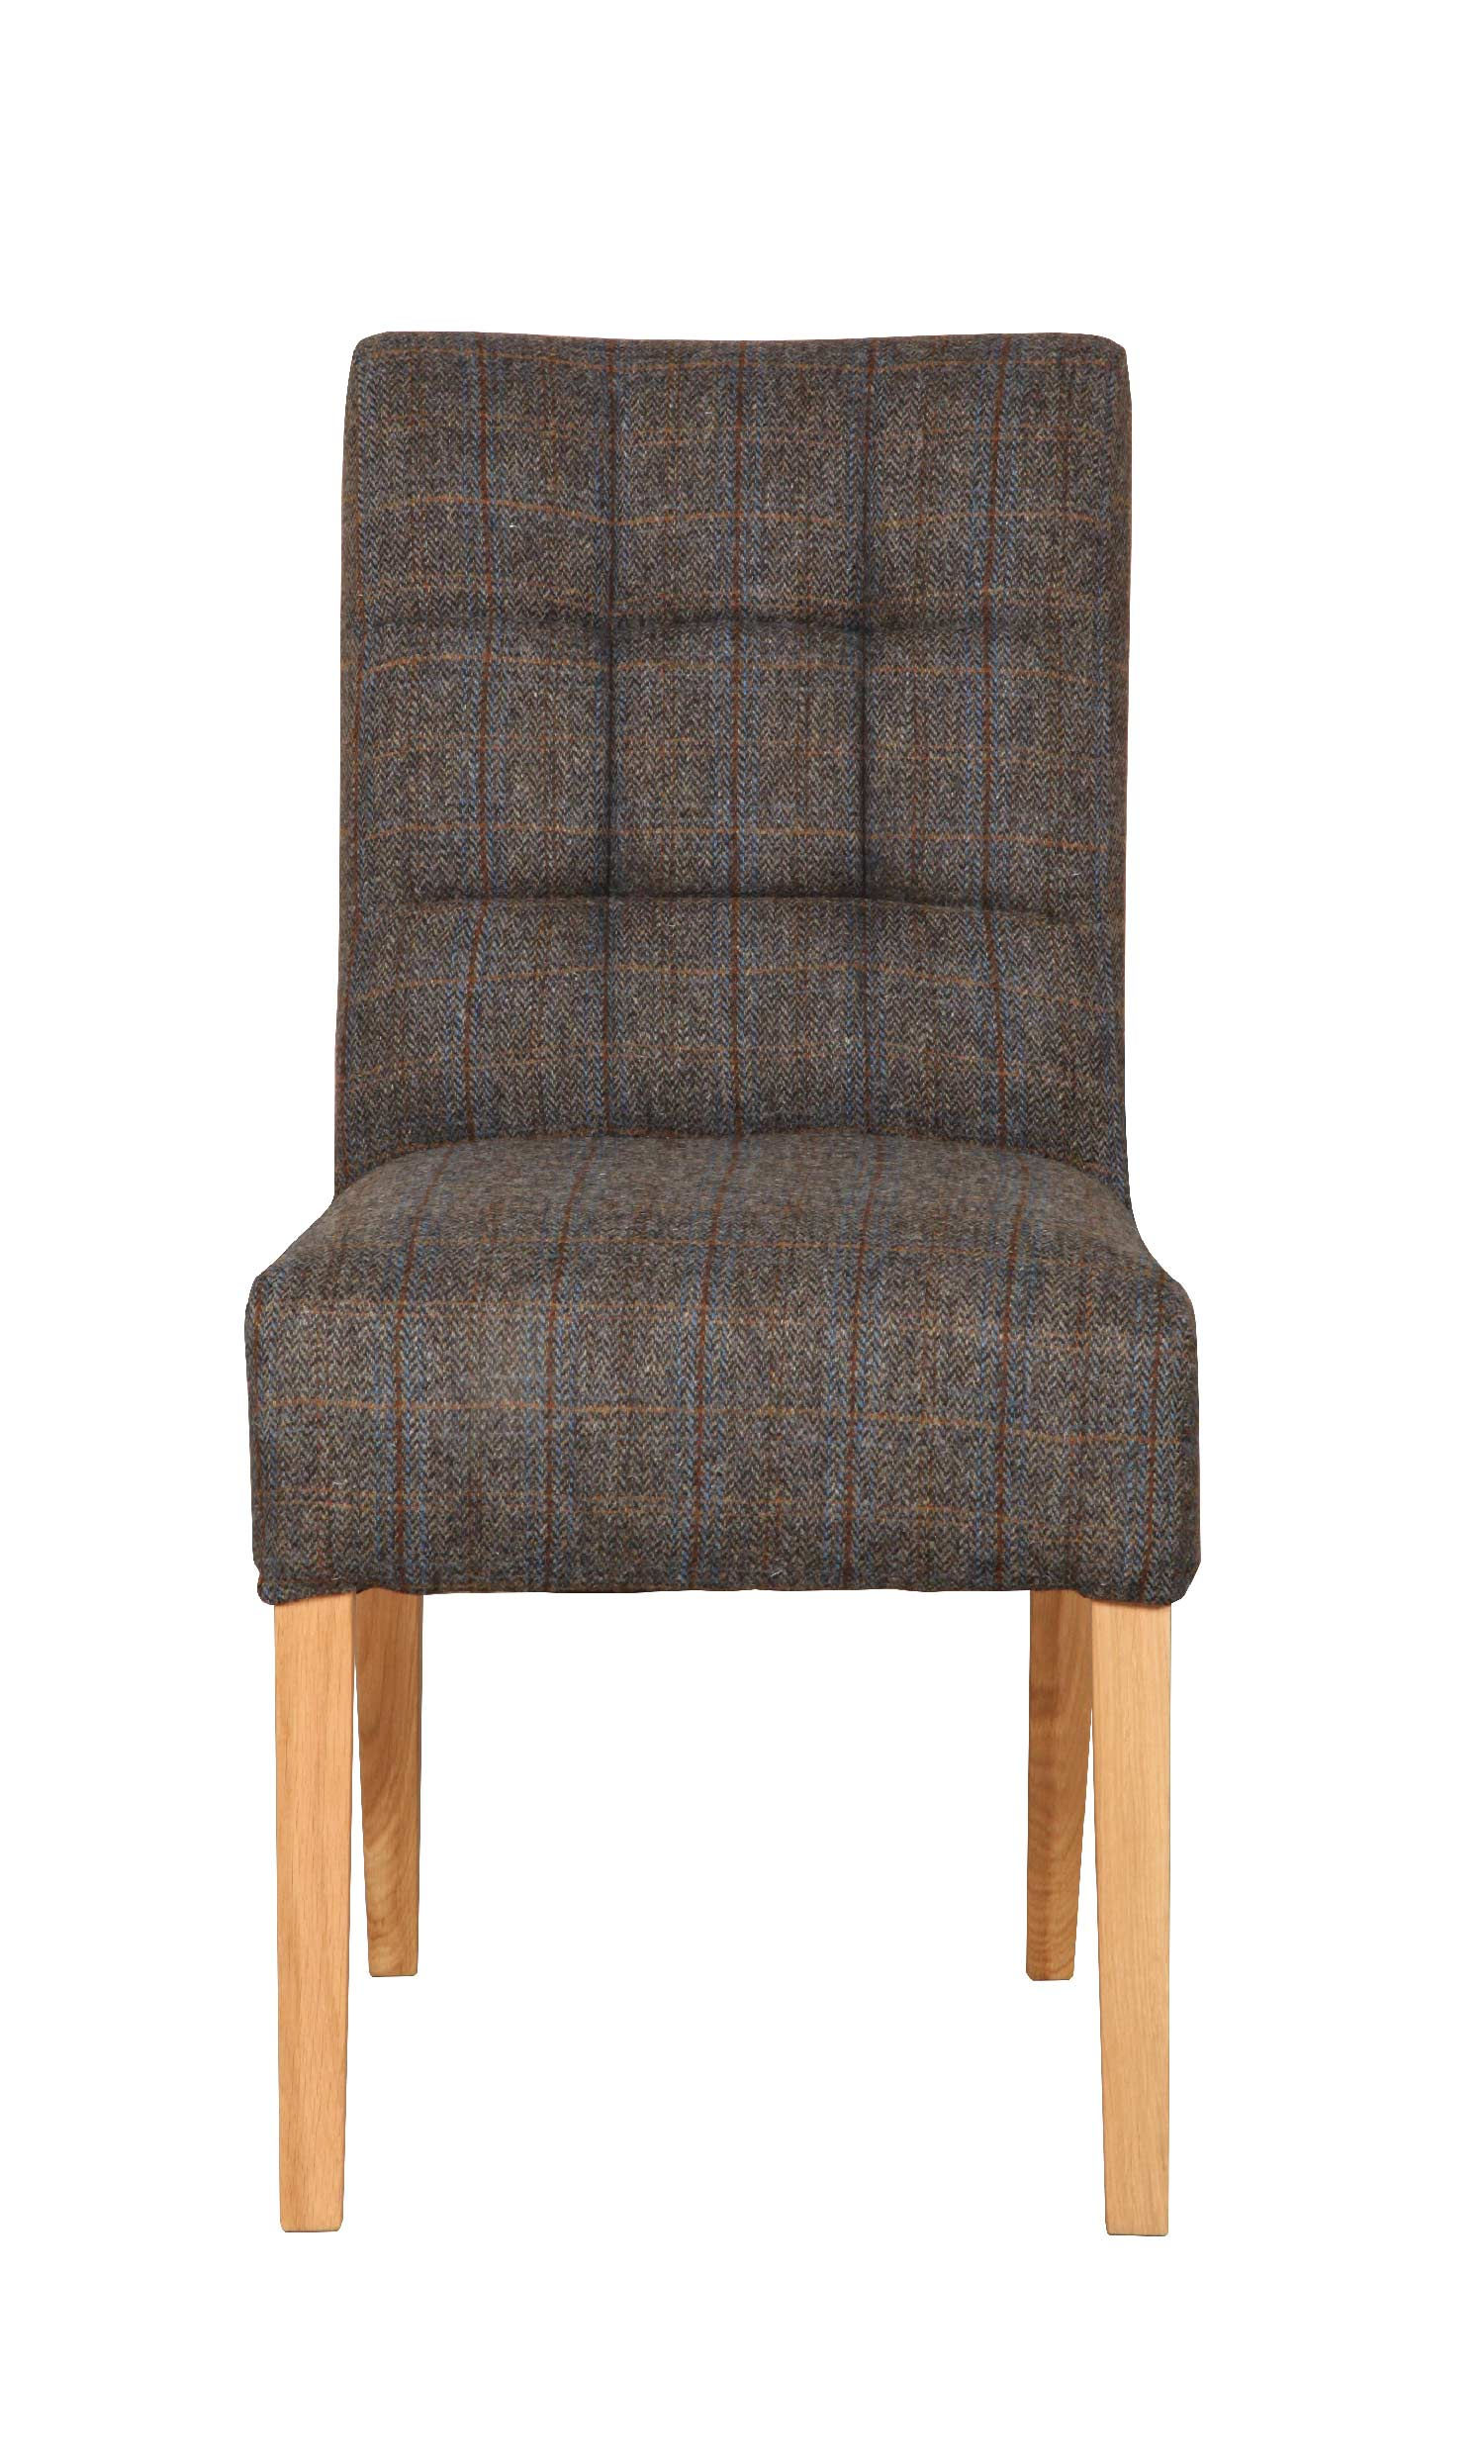 Harris Tweed Colin Dining Chairs